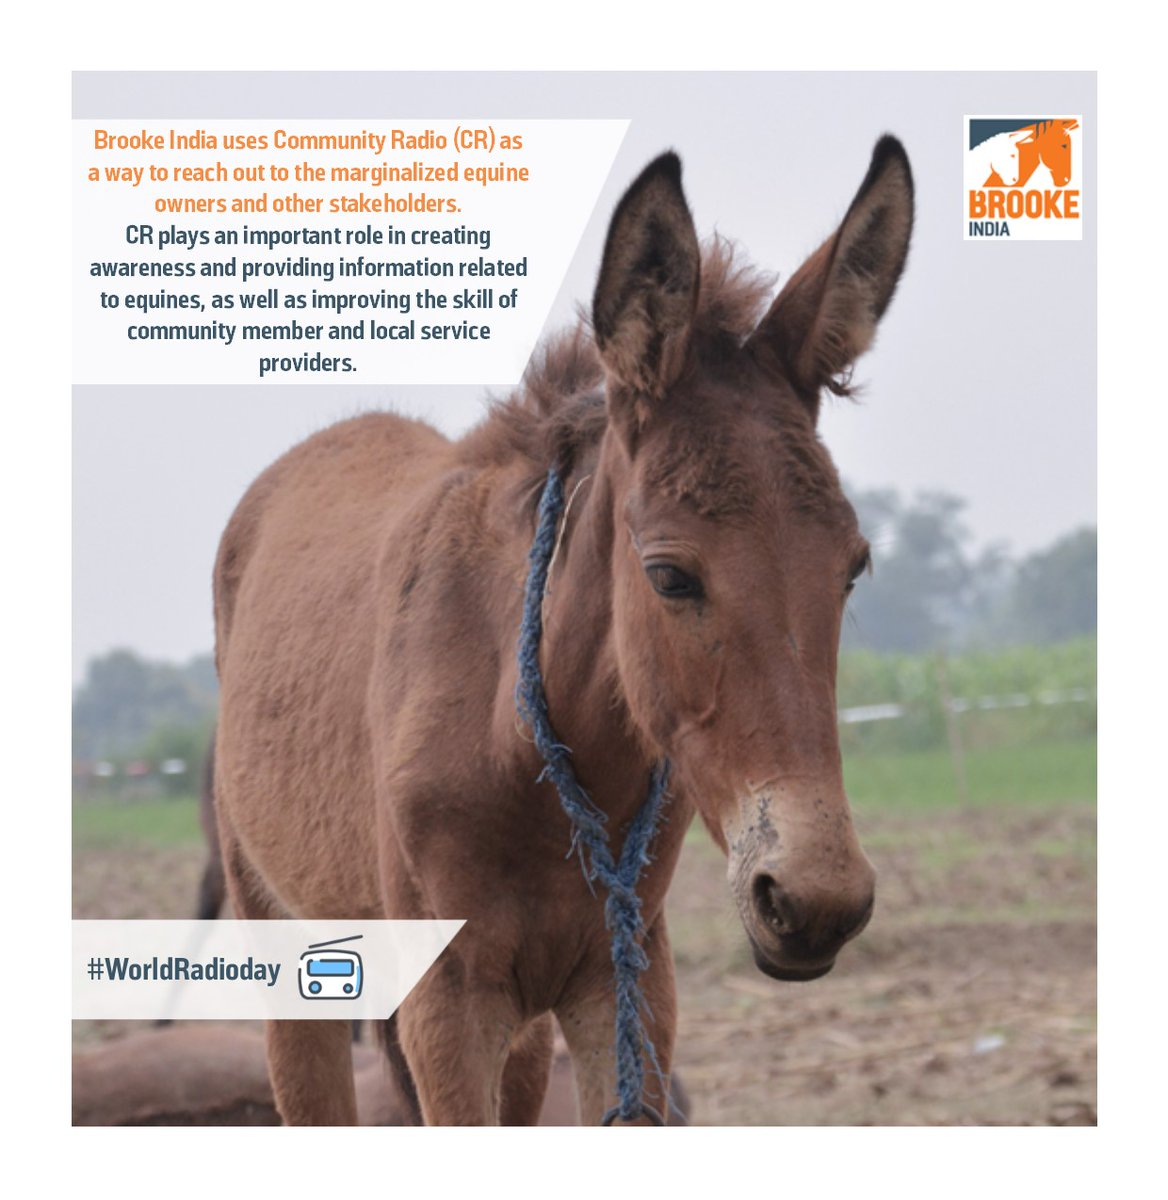 Happy World Radio Day !! @TheBrooke  #BrookeIndia #EquineHealth #Animal #Welfare #Equinewelfare #EquineCharity #NGO #Livelihood #Theoryofchange #Community #Resilience #Compassion #Equine #Sustainability #Support #WorldRadioDay2020pic.twitter.com/J8e8eG2IZ7